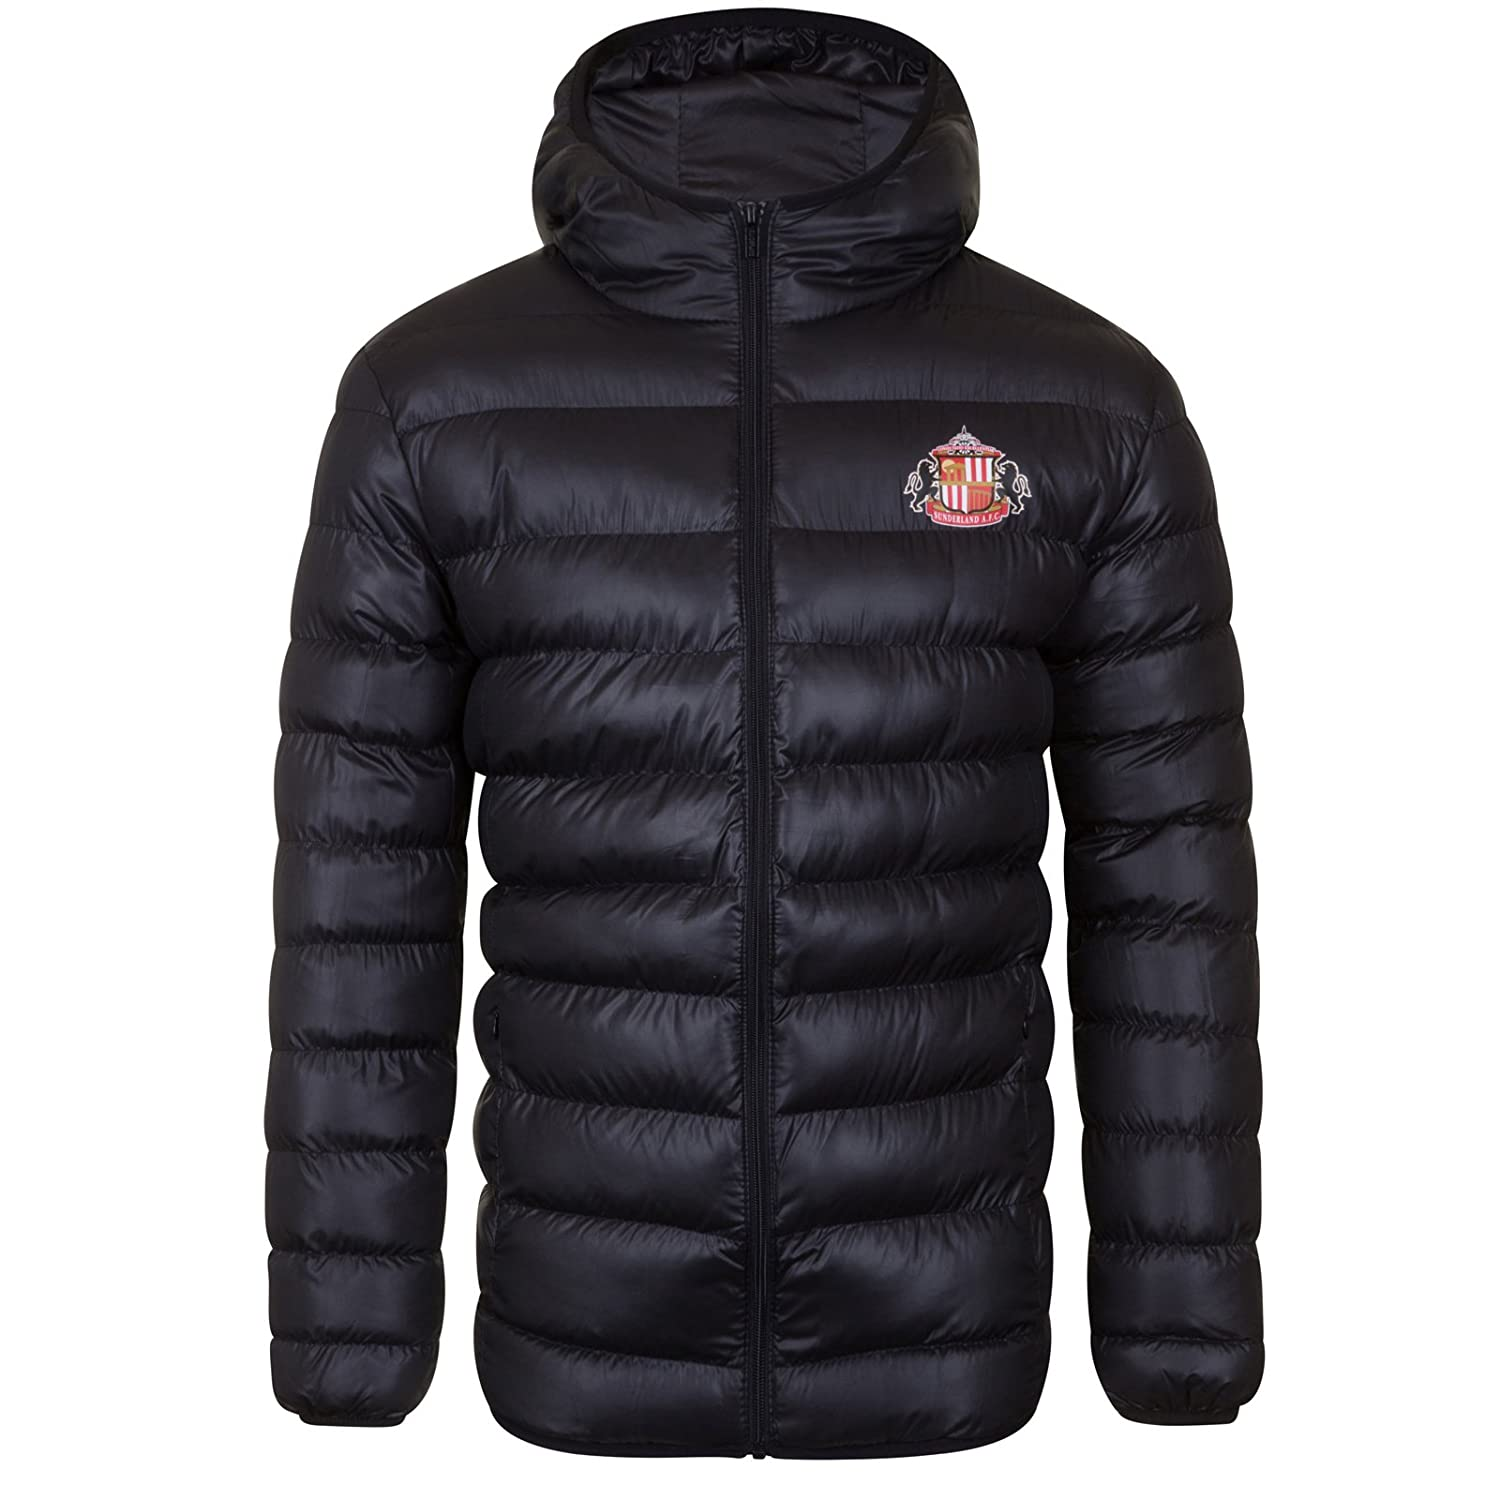 Sunderland AFC Official Football Gift Mens Quilted Hooded Winter Jacket